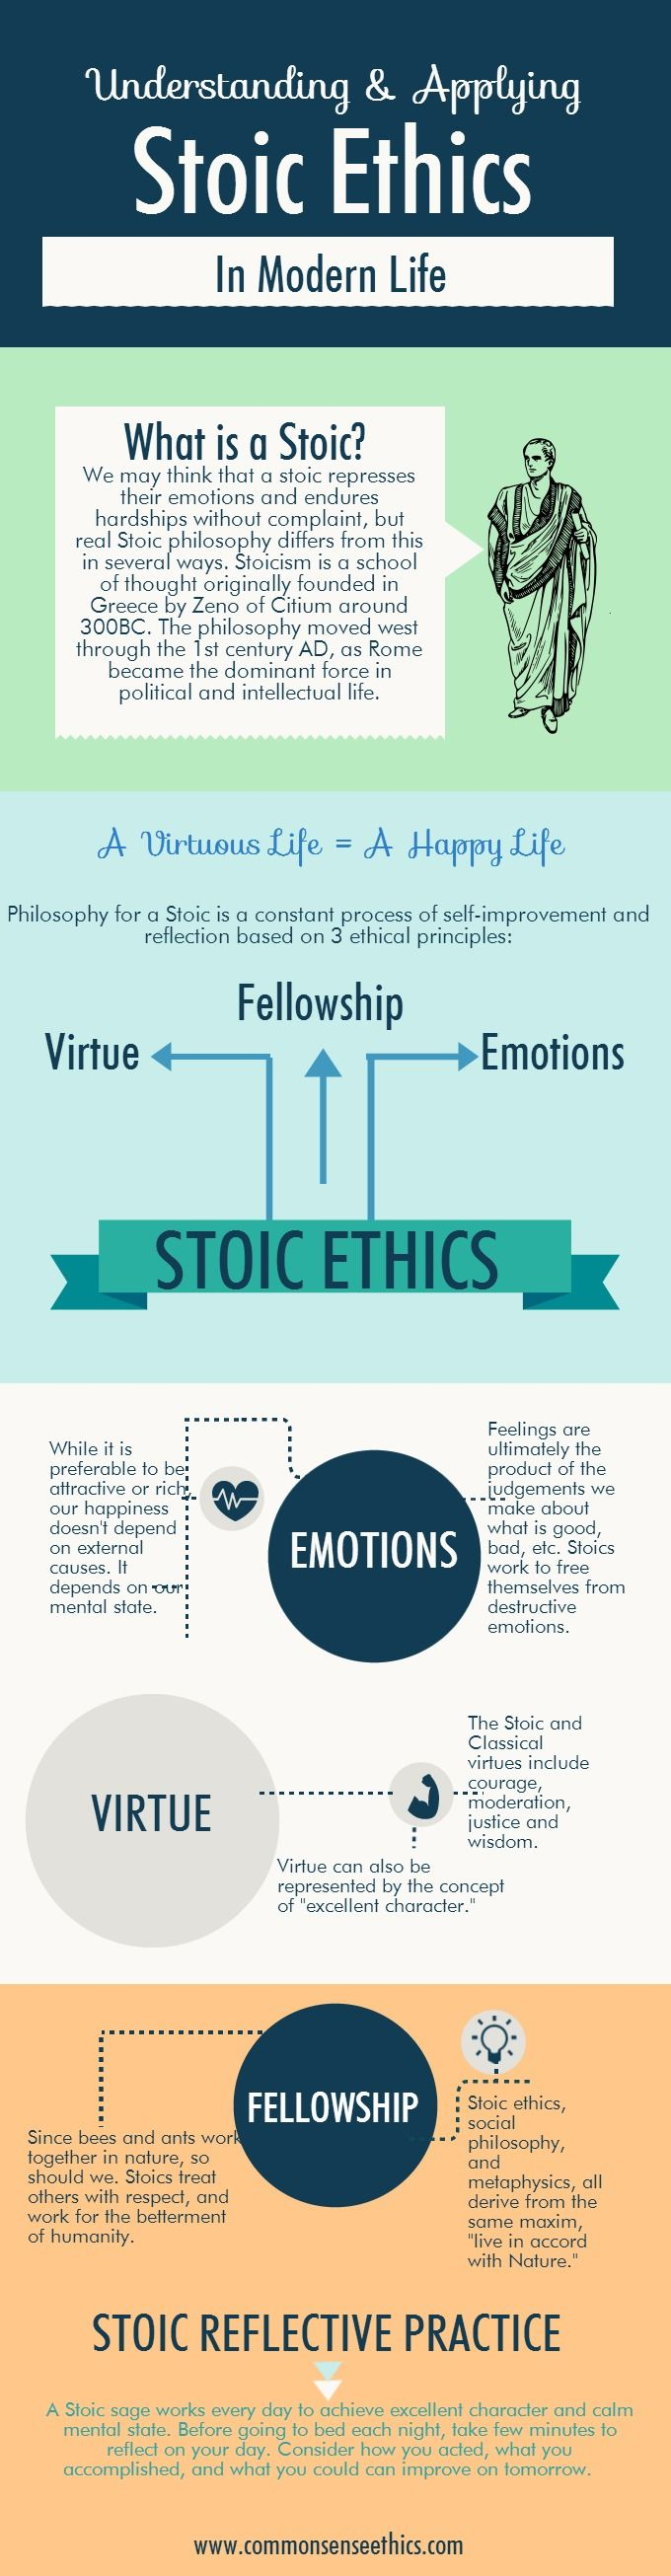 This quick guide provides an overview of ancient Stoic wisdom and an introduction to the Stoic point of view on ethics and personal growth.